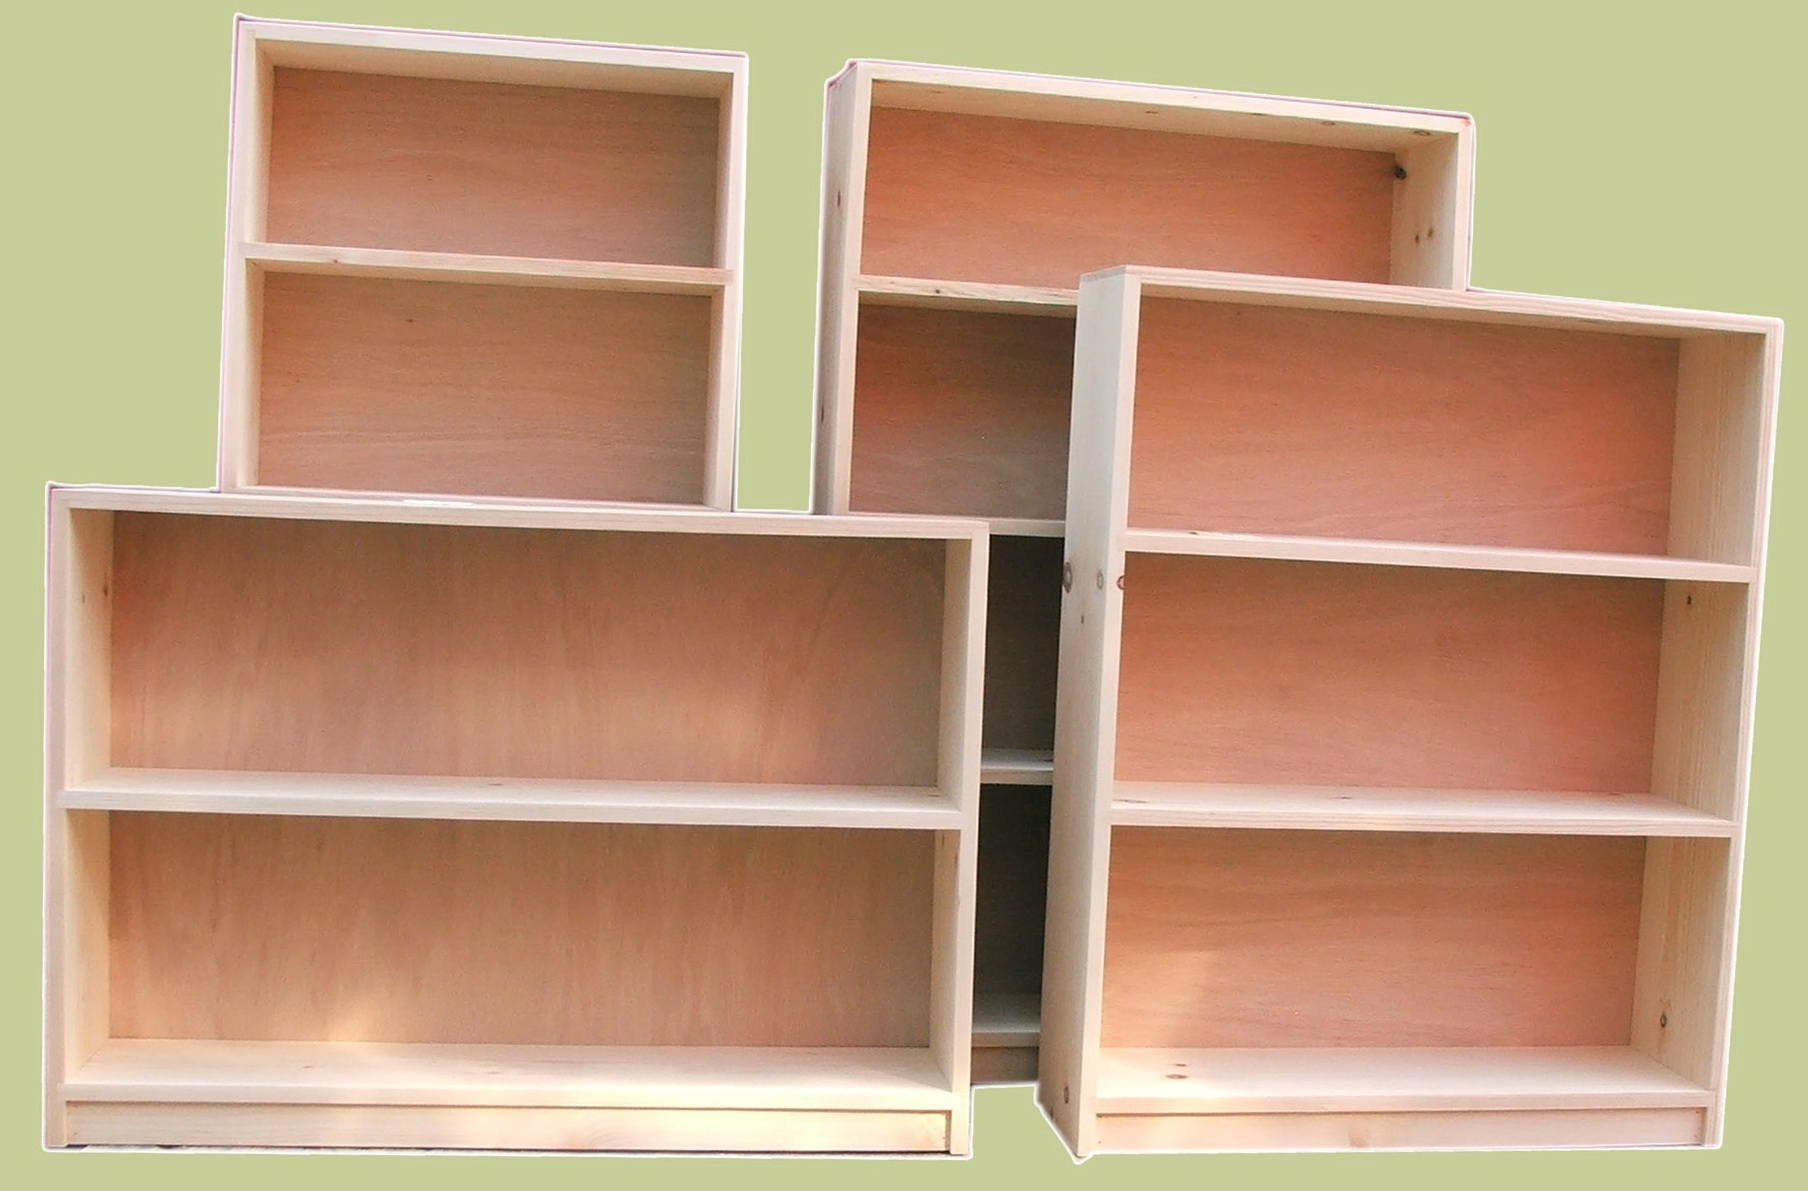 steps bookshelf pictures bookshelves accent furniture low intended bookcases date plans to waste most storages for cheap bookcase up of easy top with